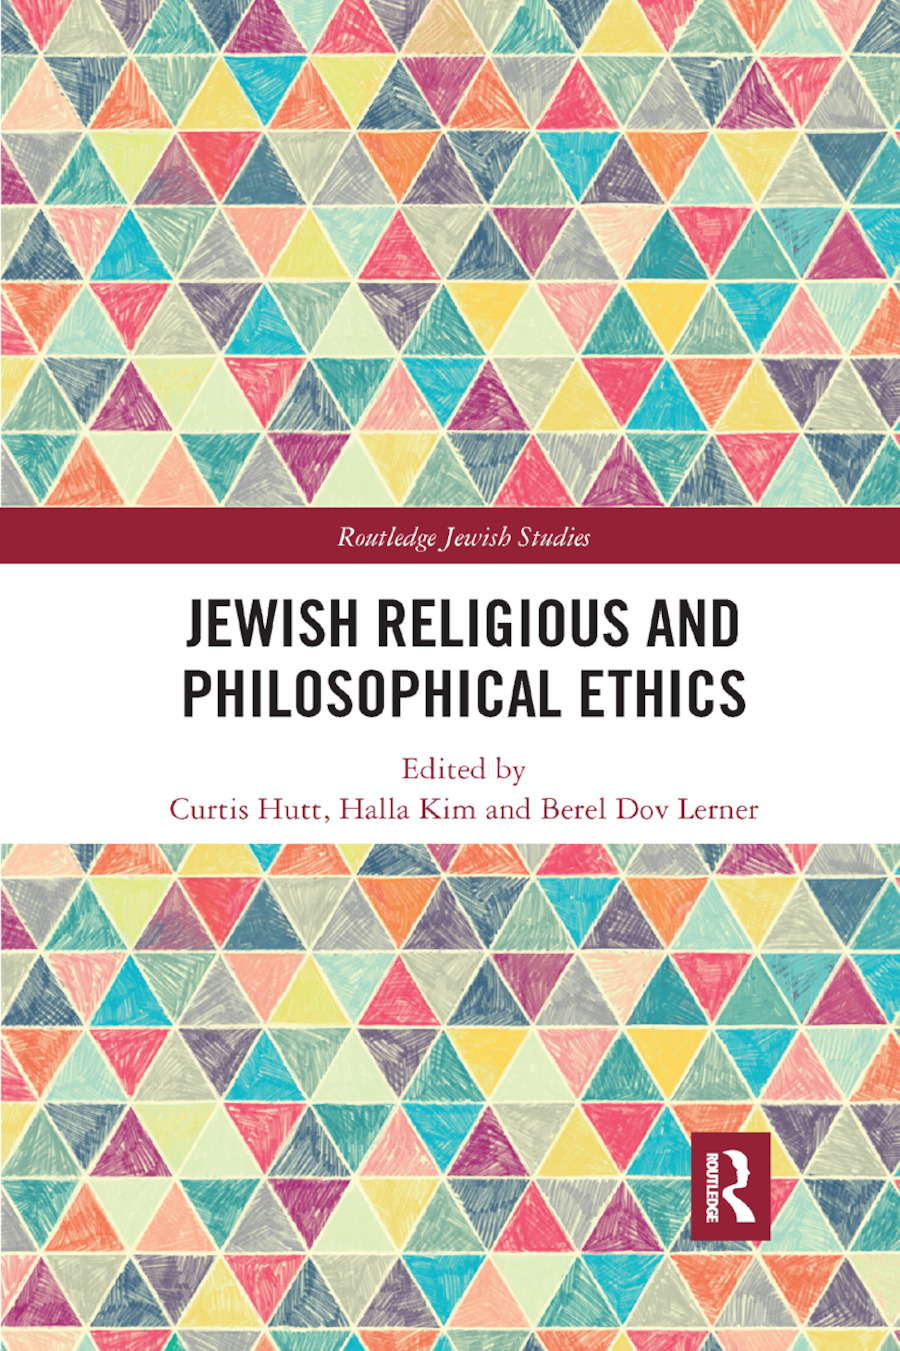 Jewish Religious and Philosophical Ethics book cover